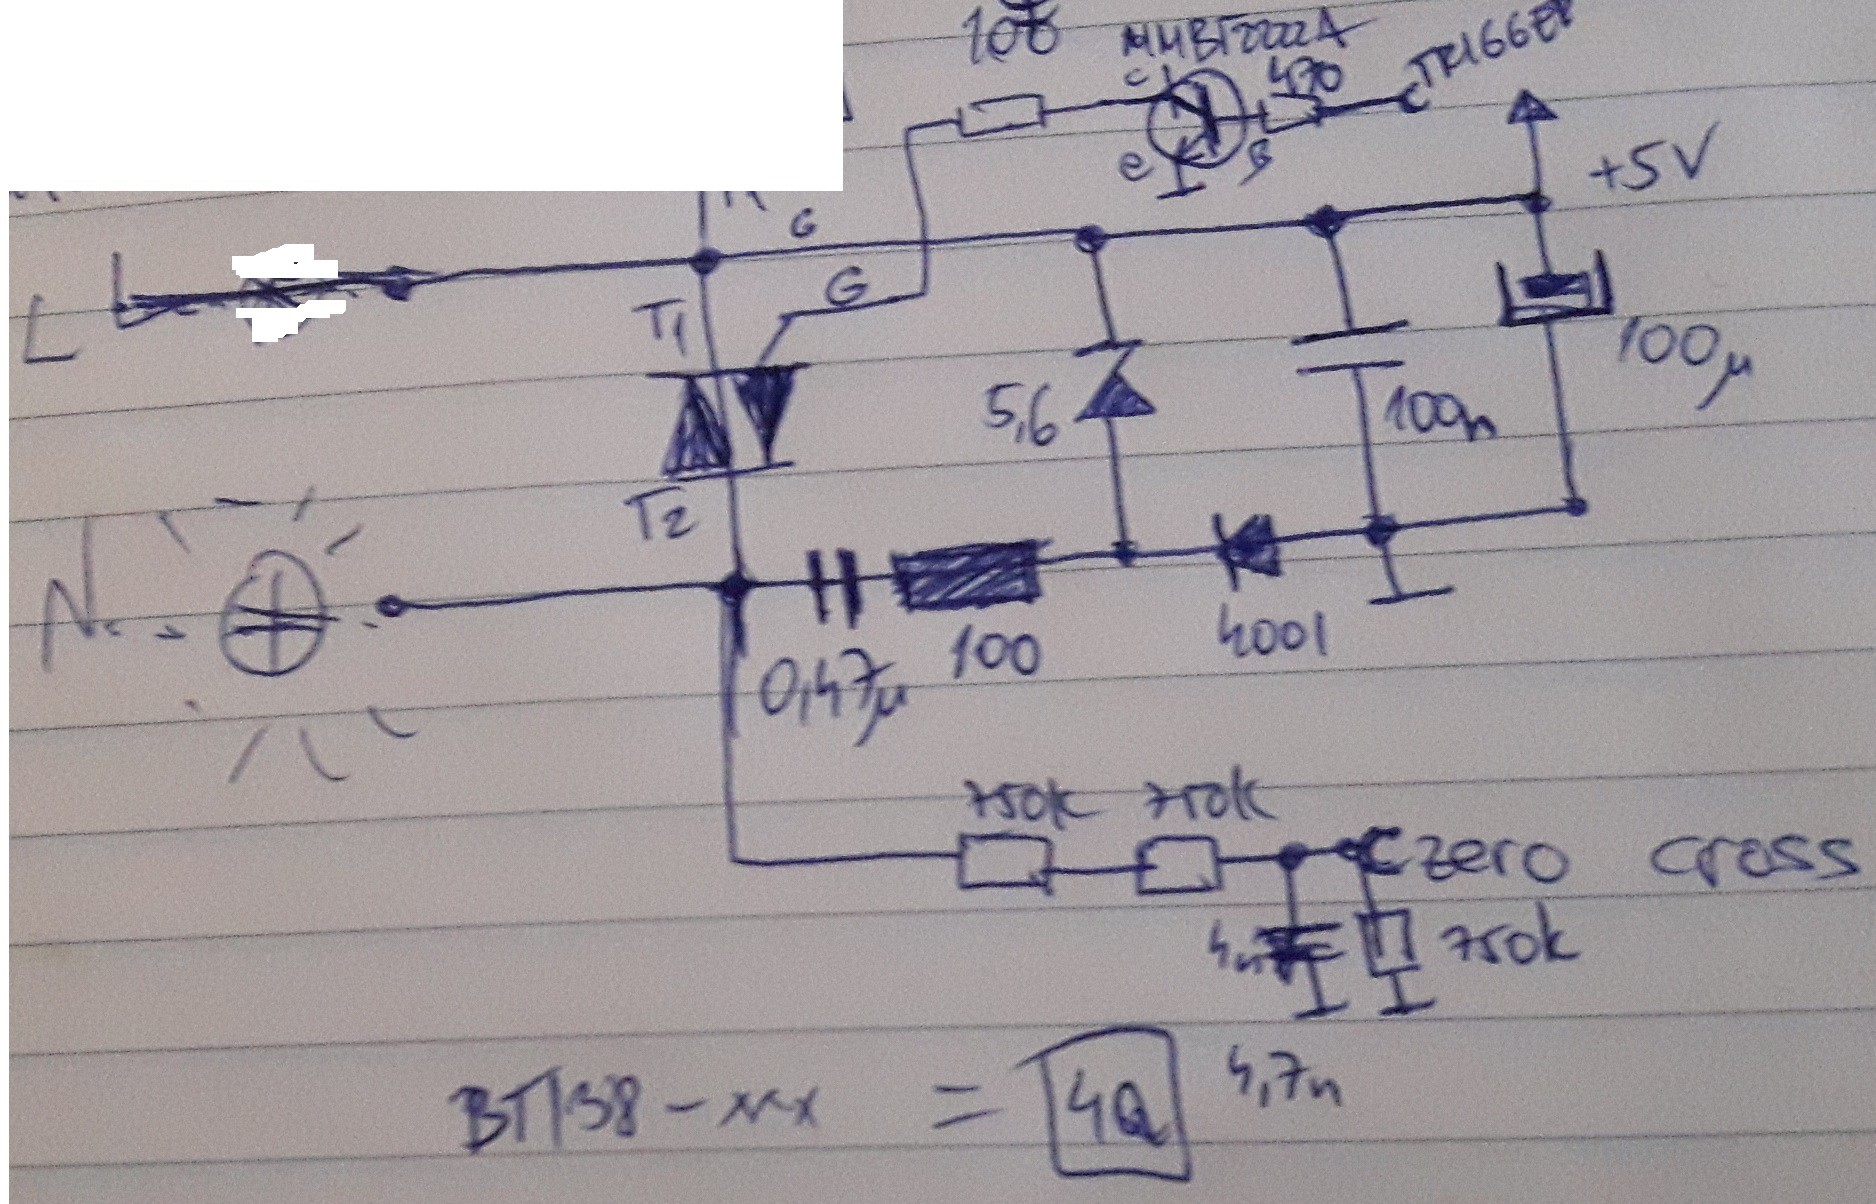 Ir Light Dimmer V2 Zero Cross Circuit A Or Crossing Is An And Very Lazy 10minute Implementation Next Step Microcontroller To Detect Trigger The